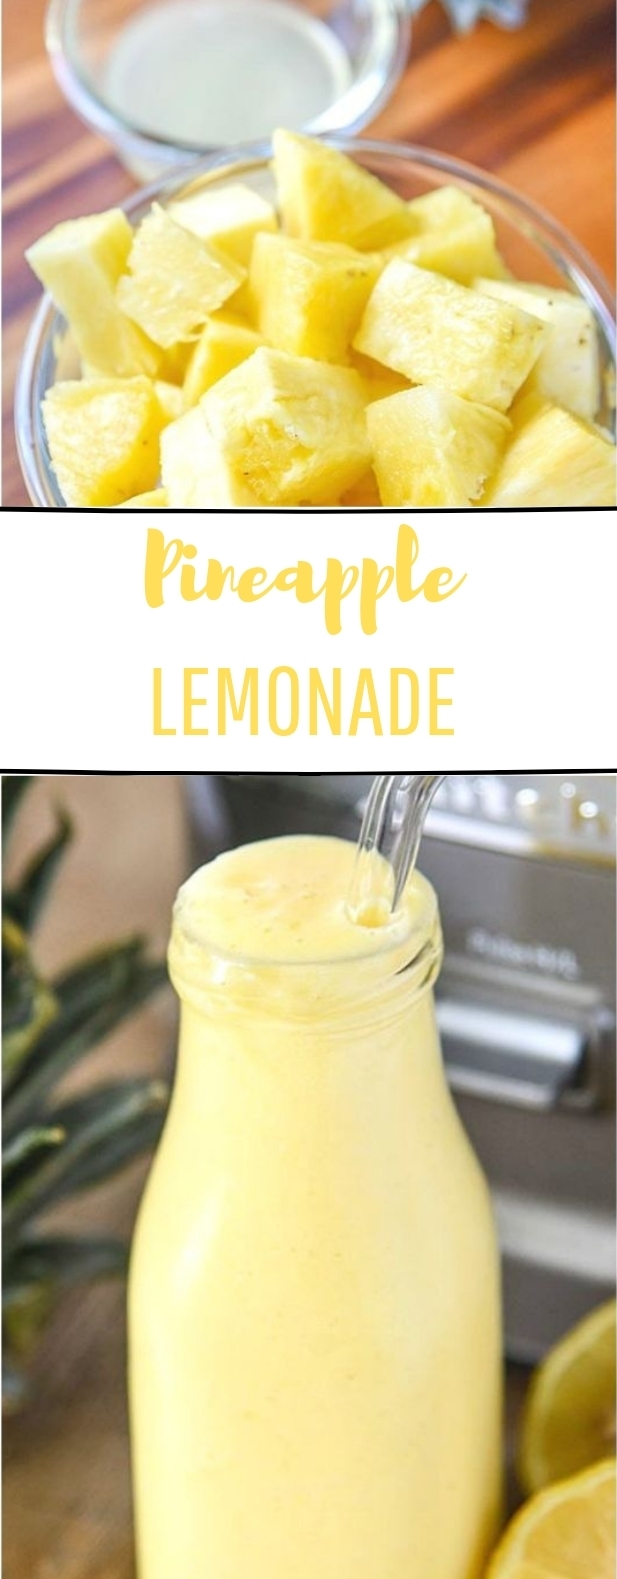 Pineapple Lemonade #freshdrink #lemonade